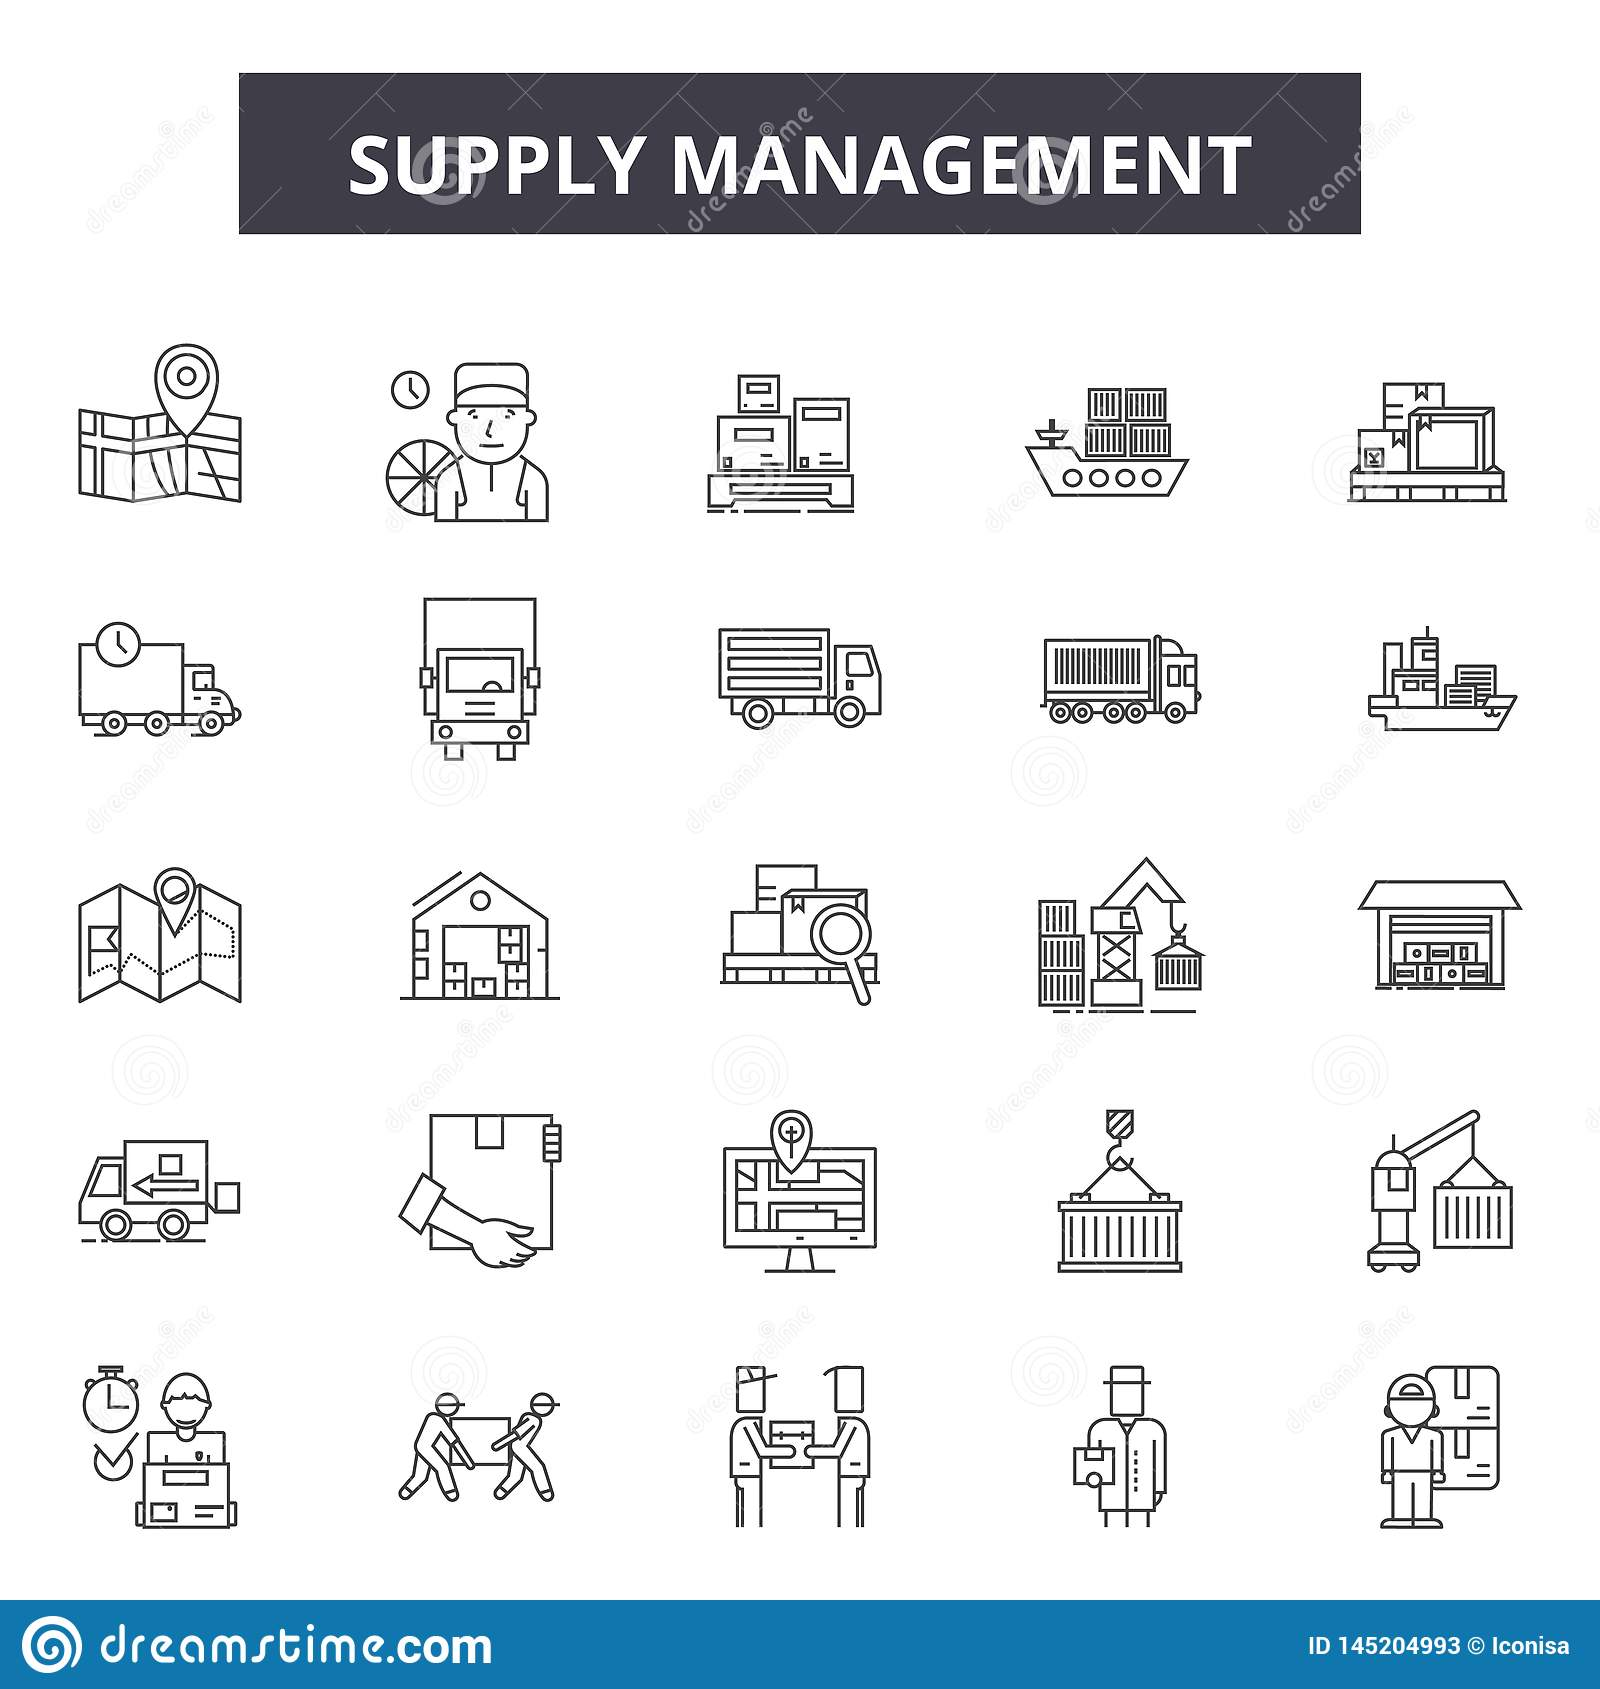 Supply management line icons, signs, vector set, outline illustration concept